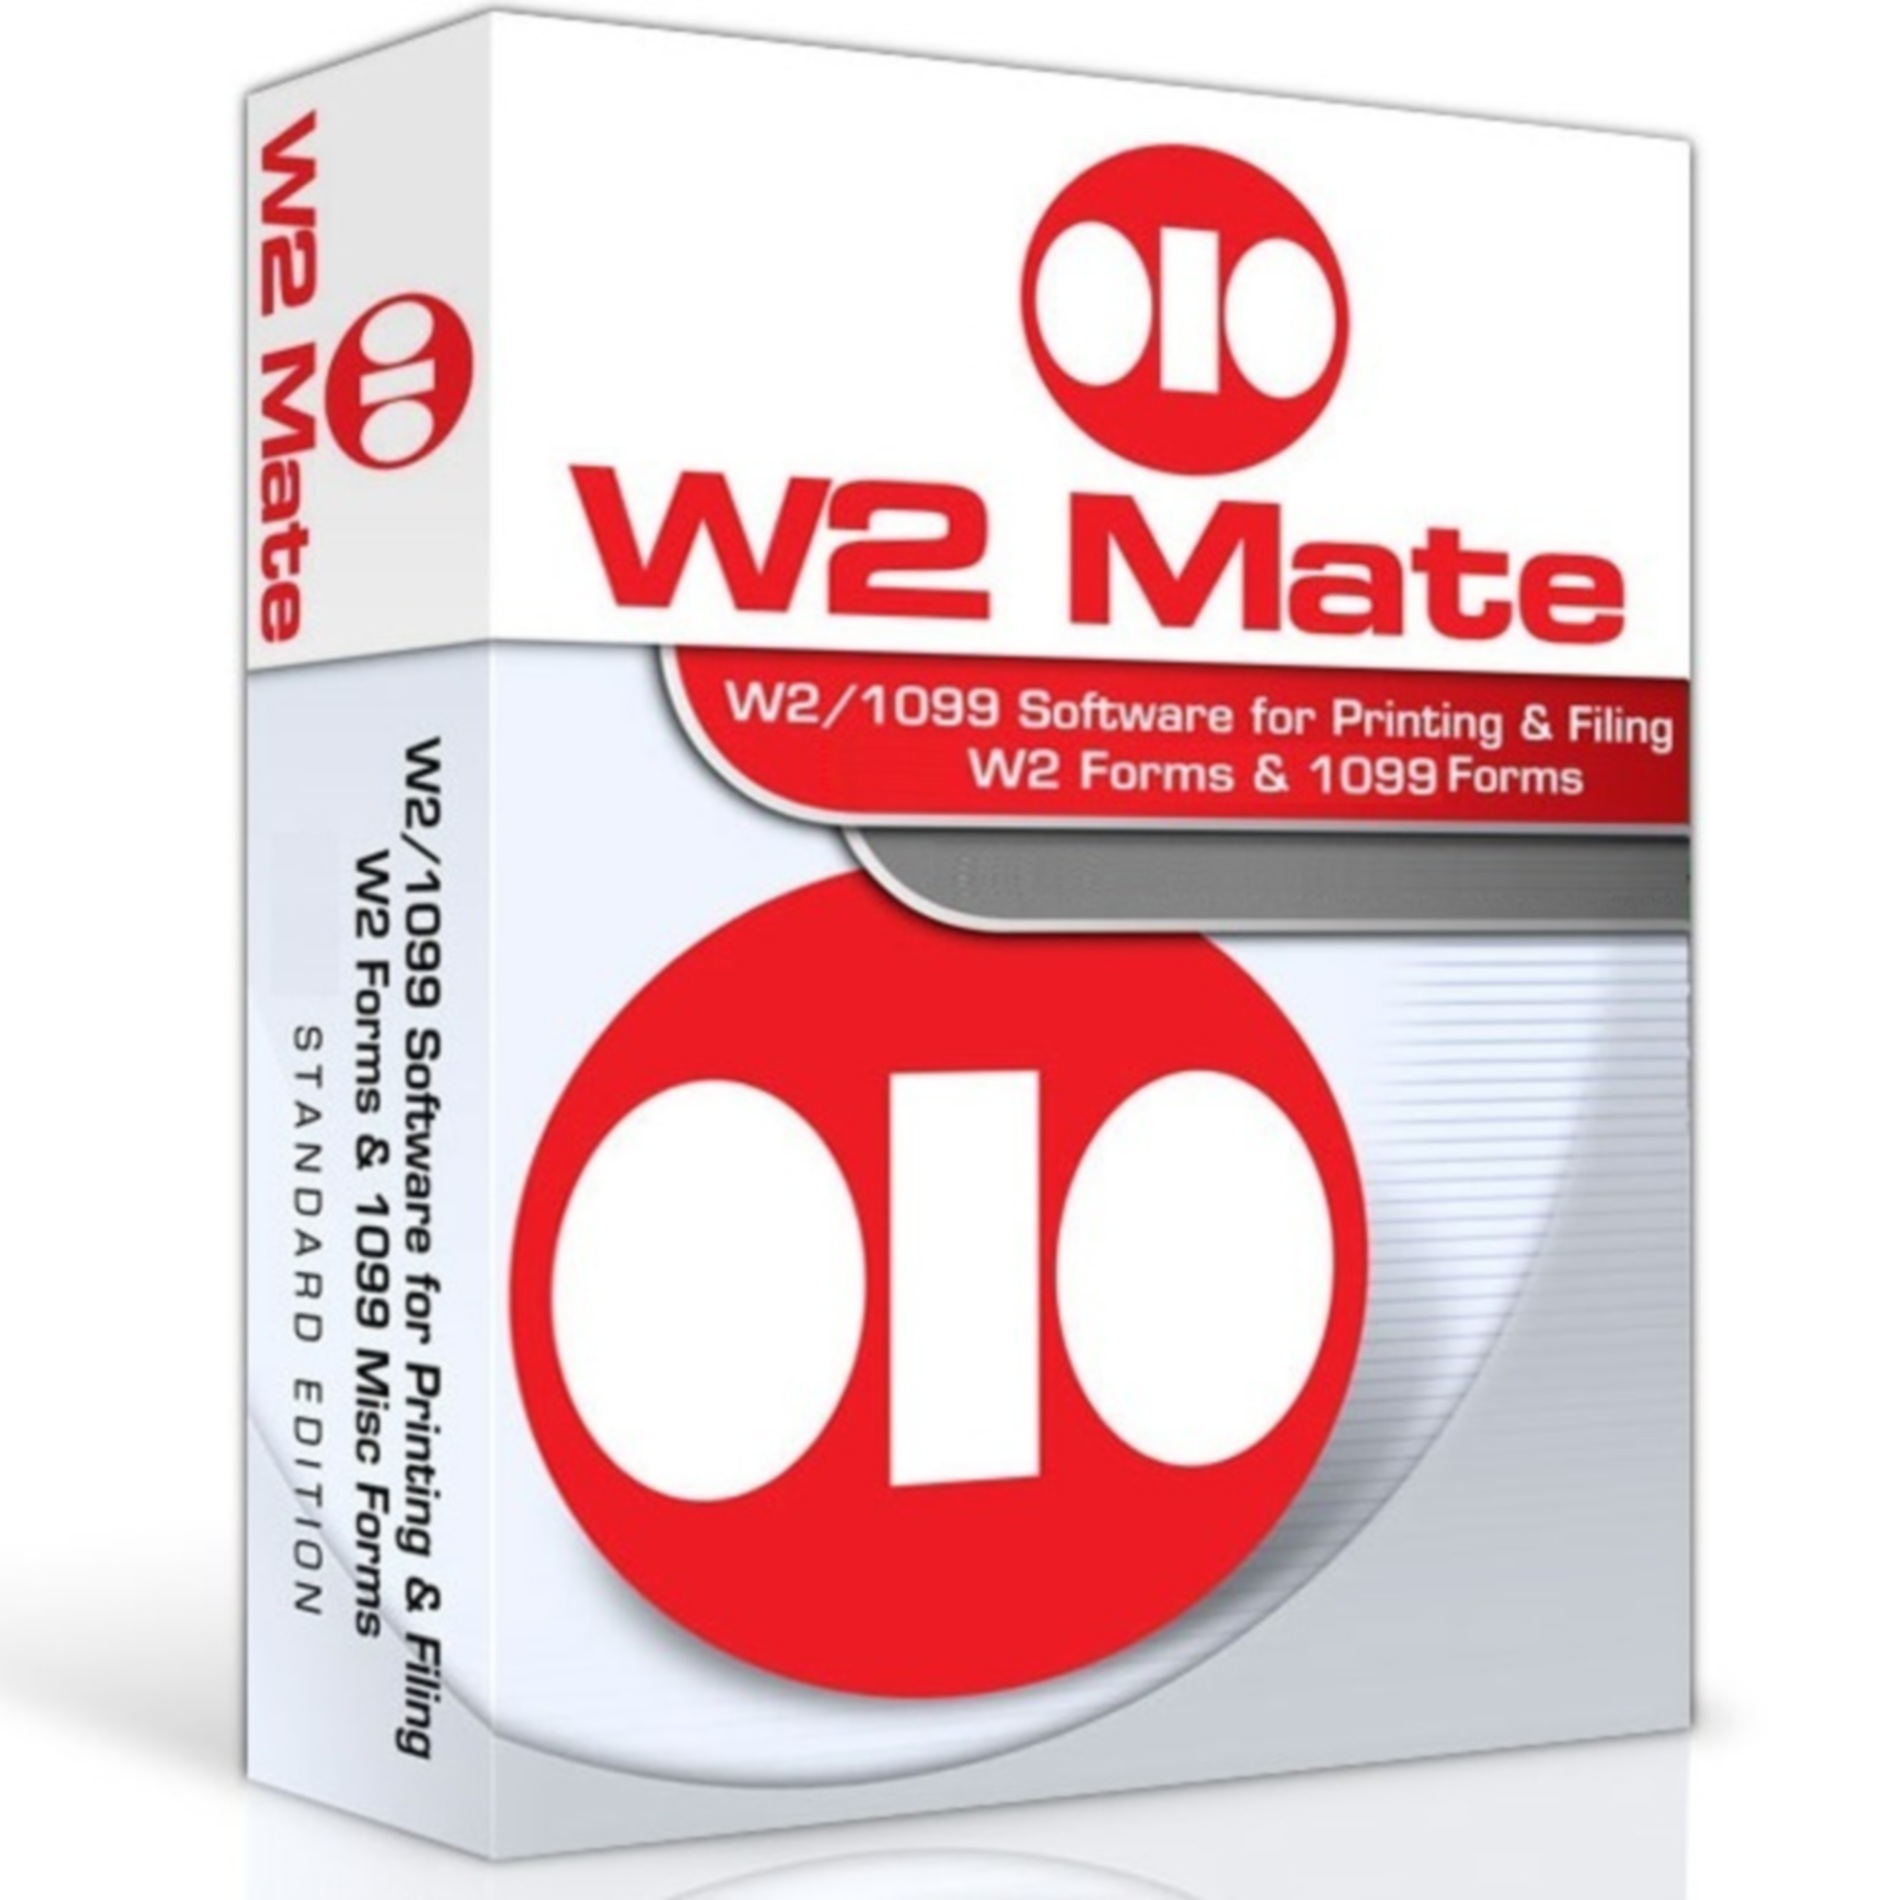 W2 Mate Software 1099 Printing Software at Sears.com